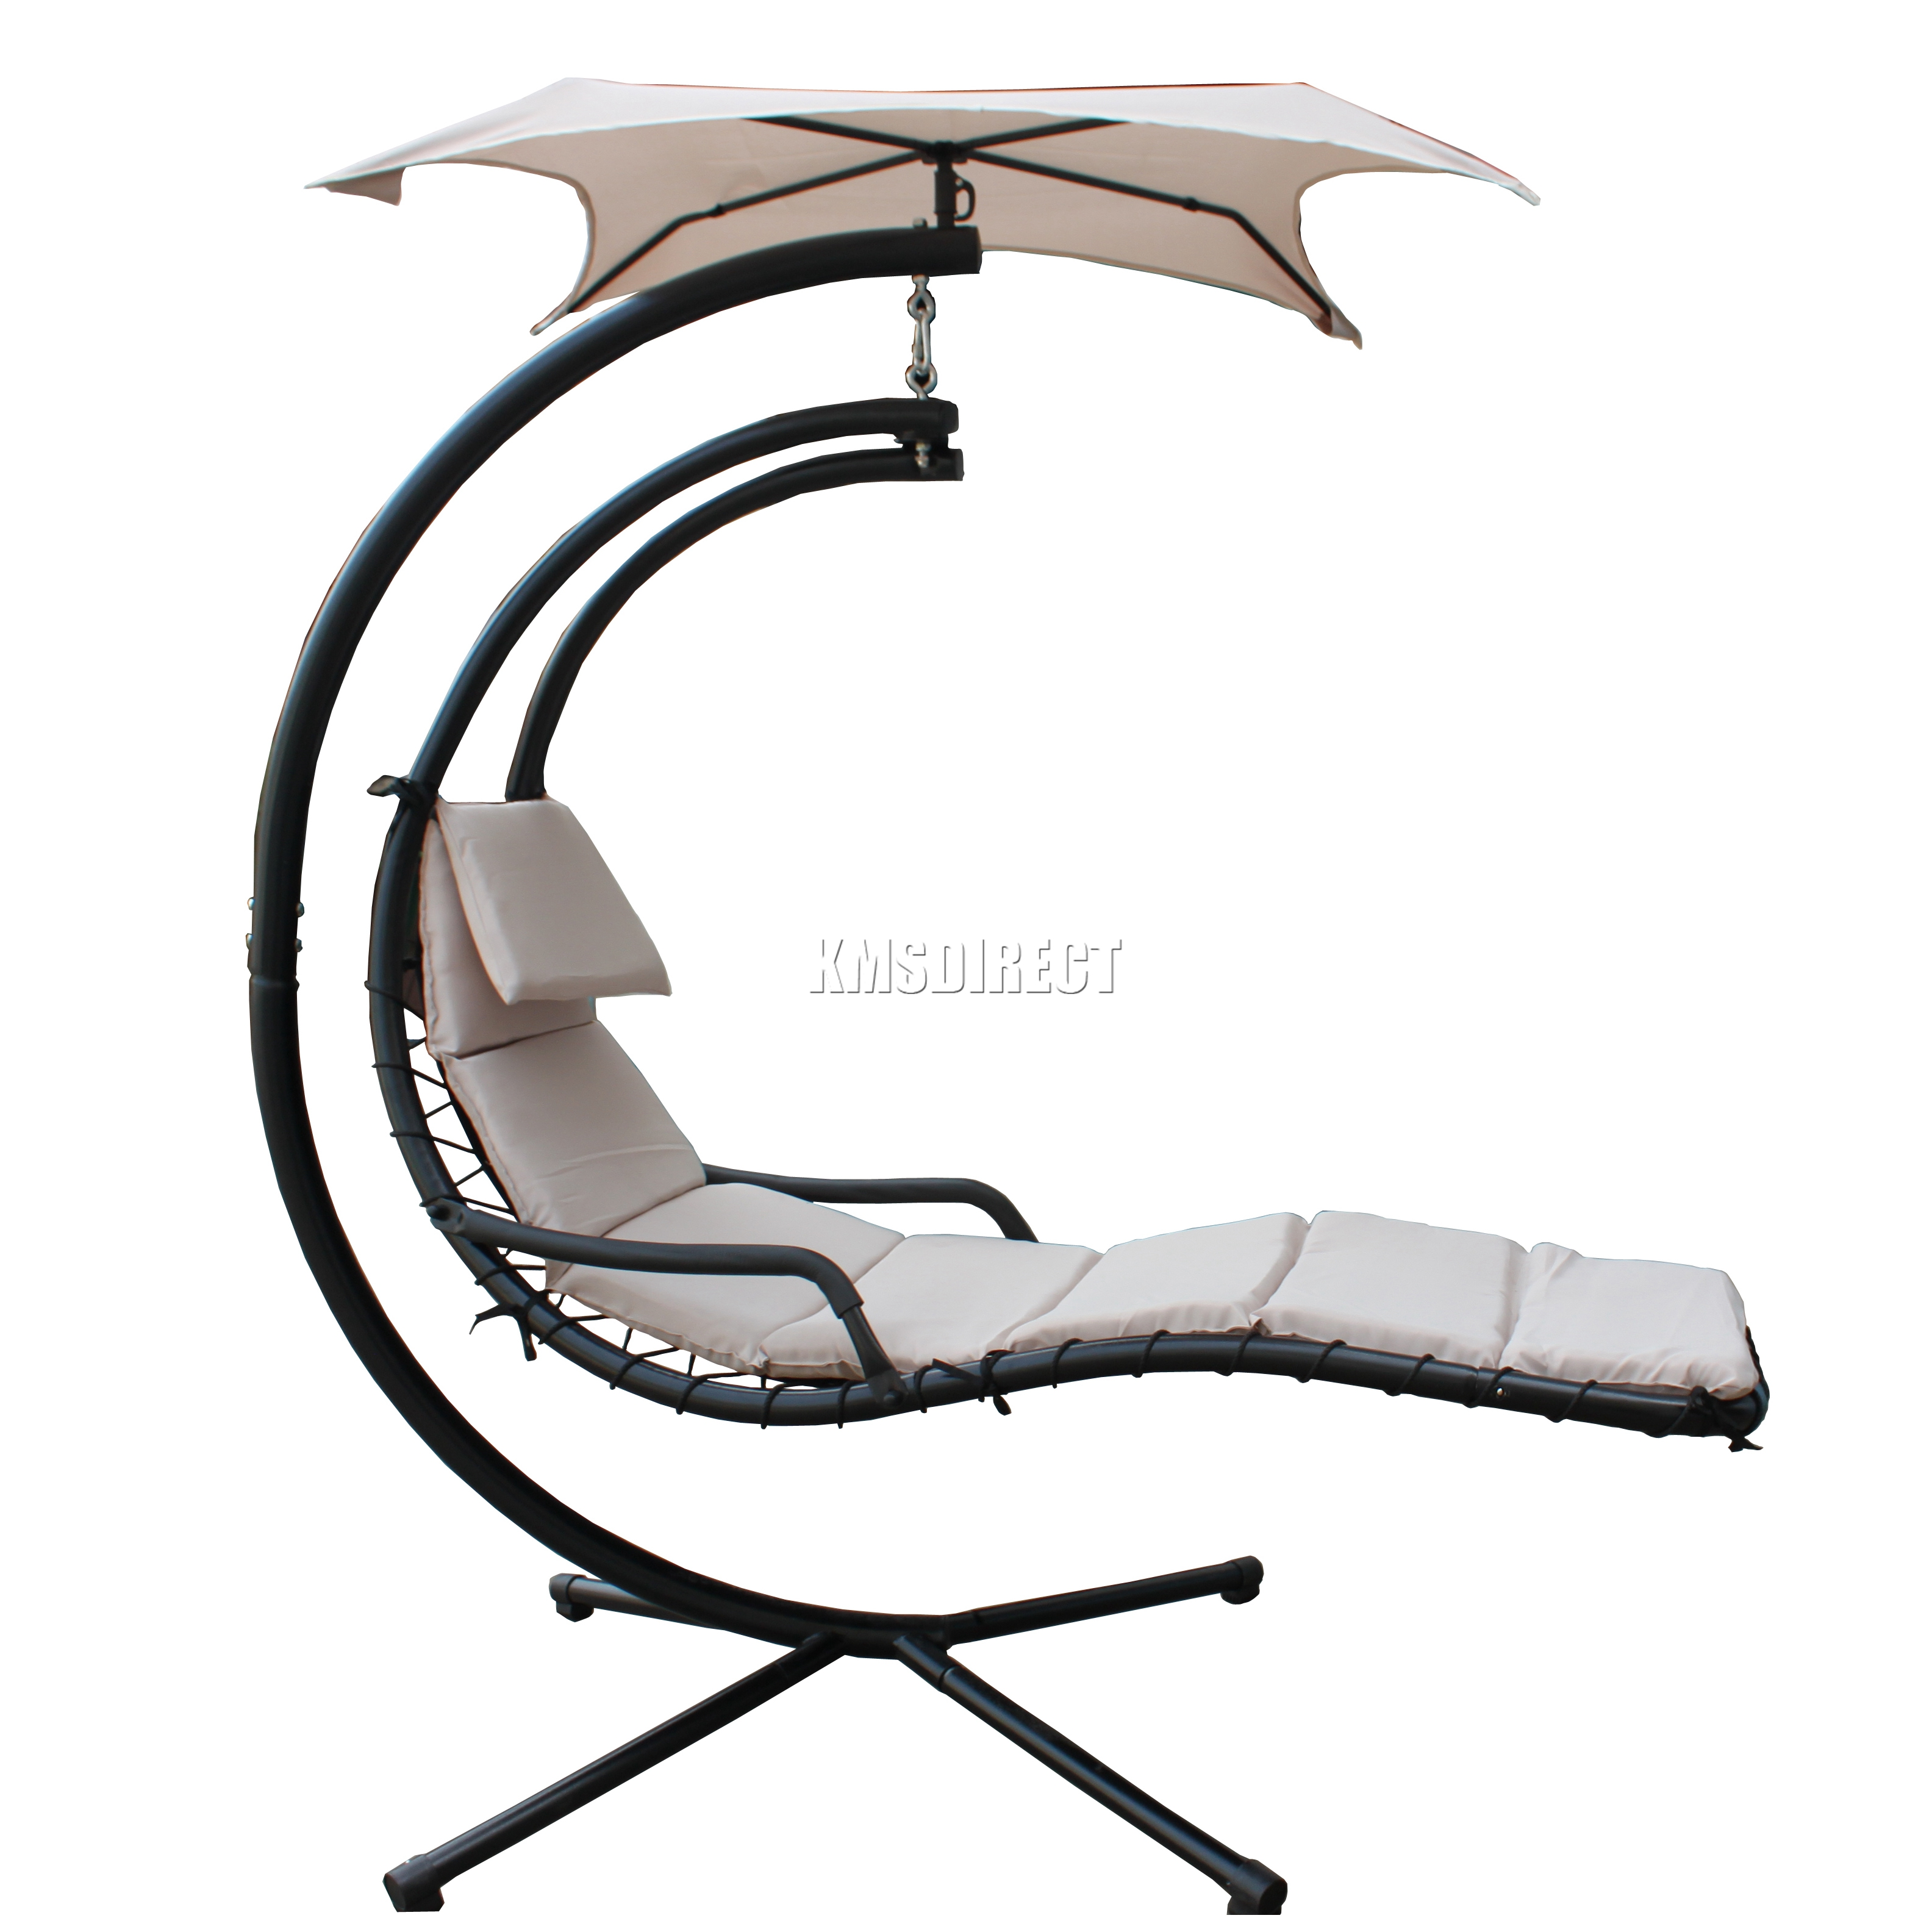 FoxHunter Garden Swing Hammock Helicopter Hanging Chair Seat Sun